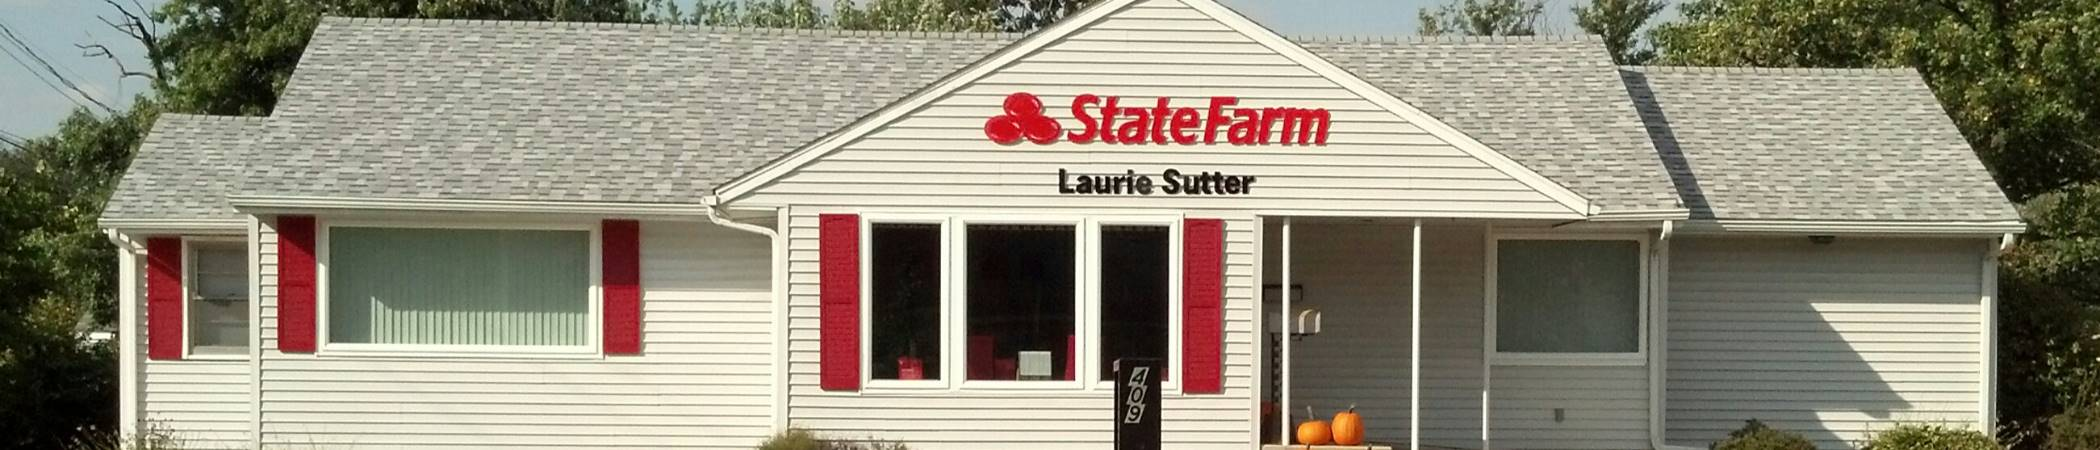 Laurie Sutter State Farm Insurance in Plymouth, IN | Home, Auto Insurance & more